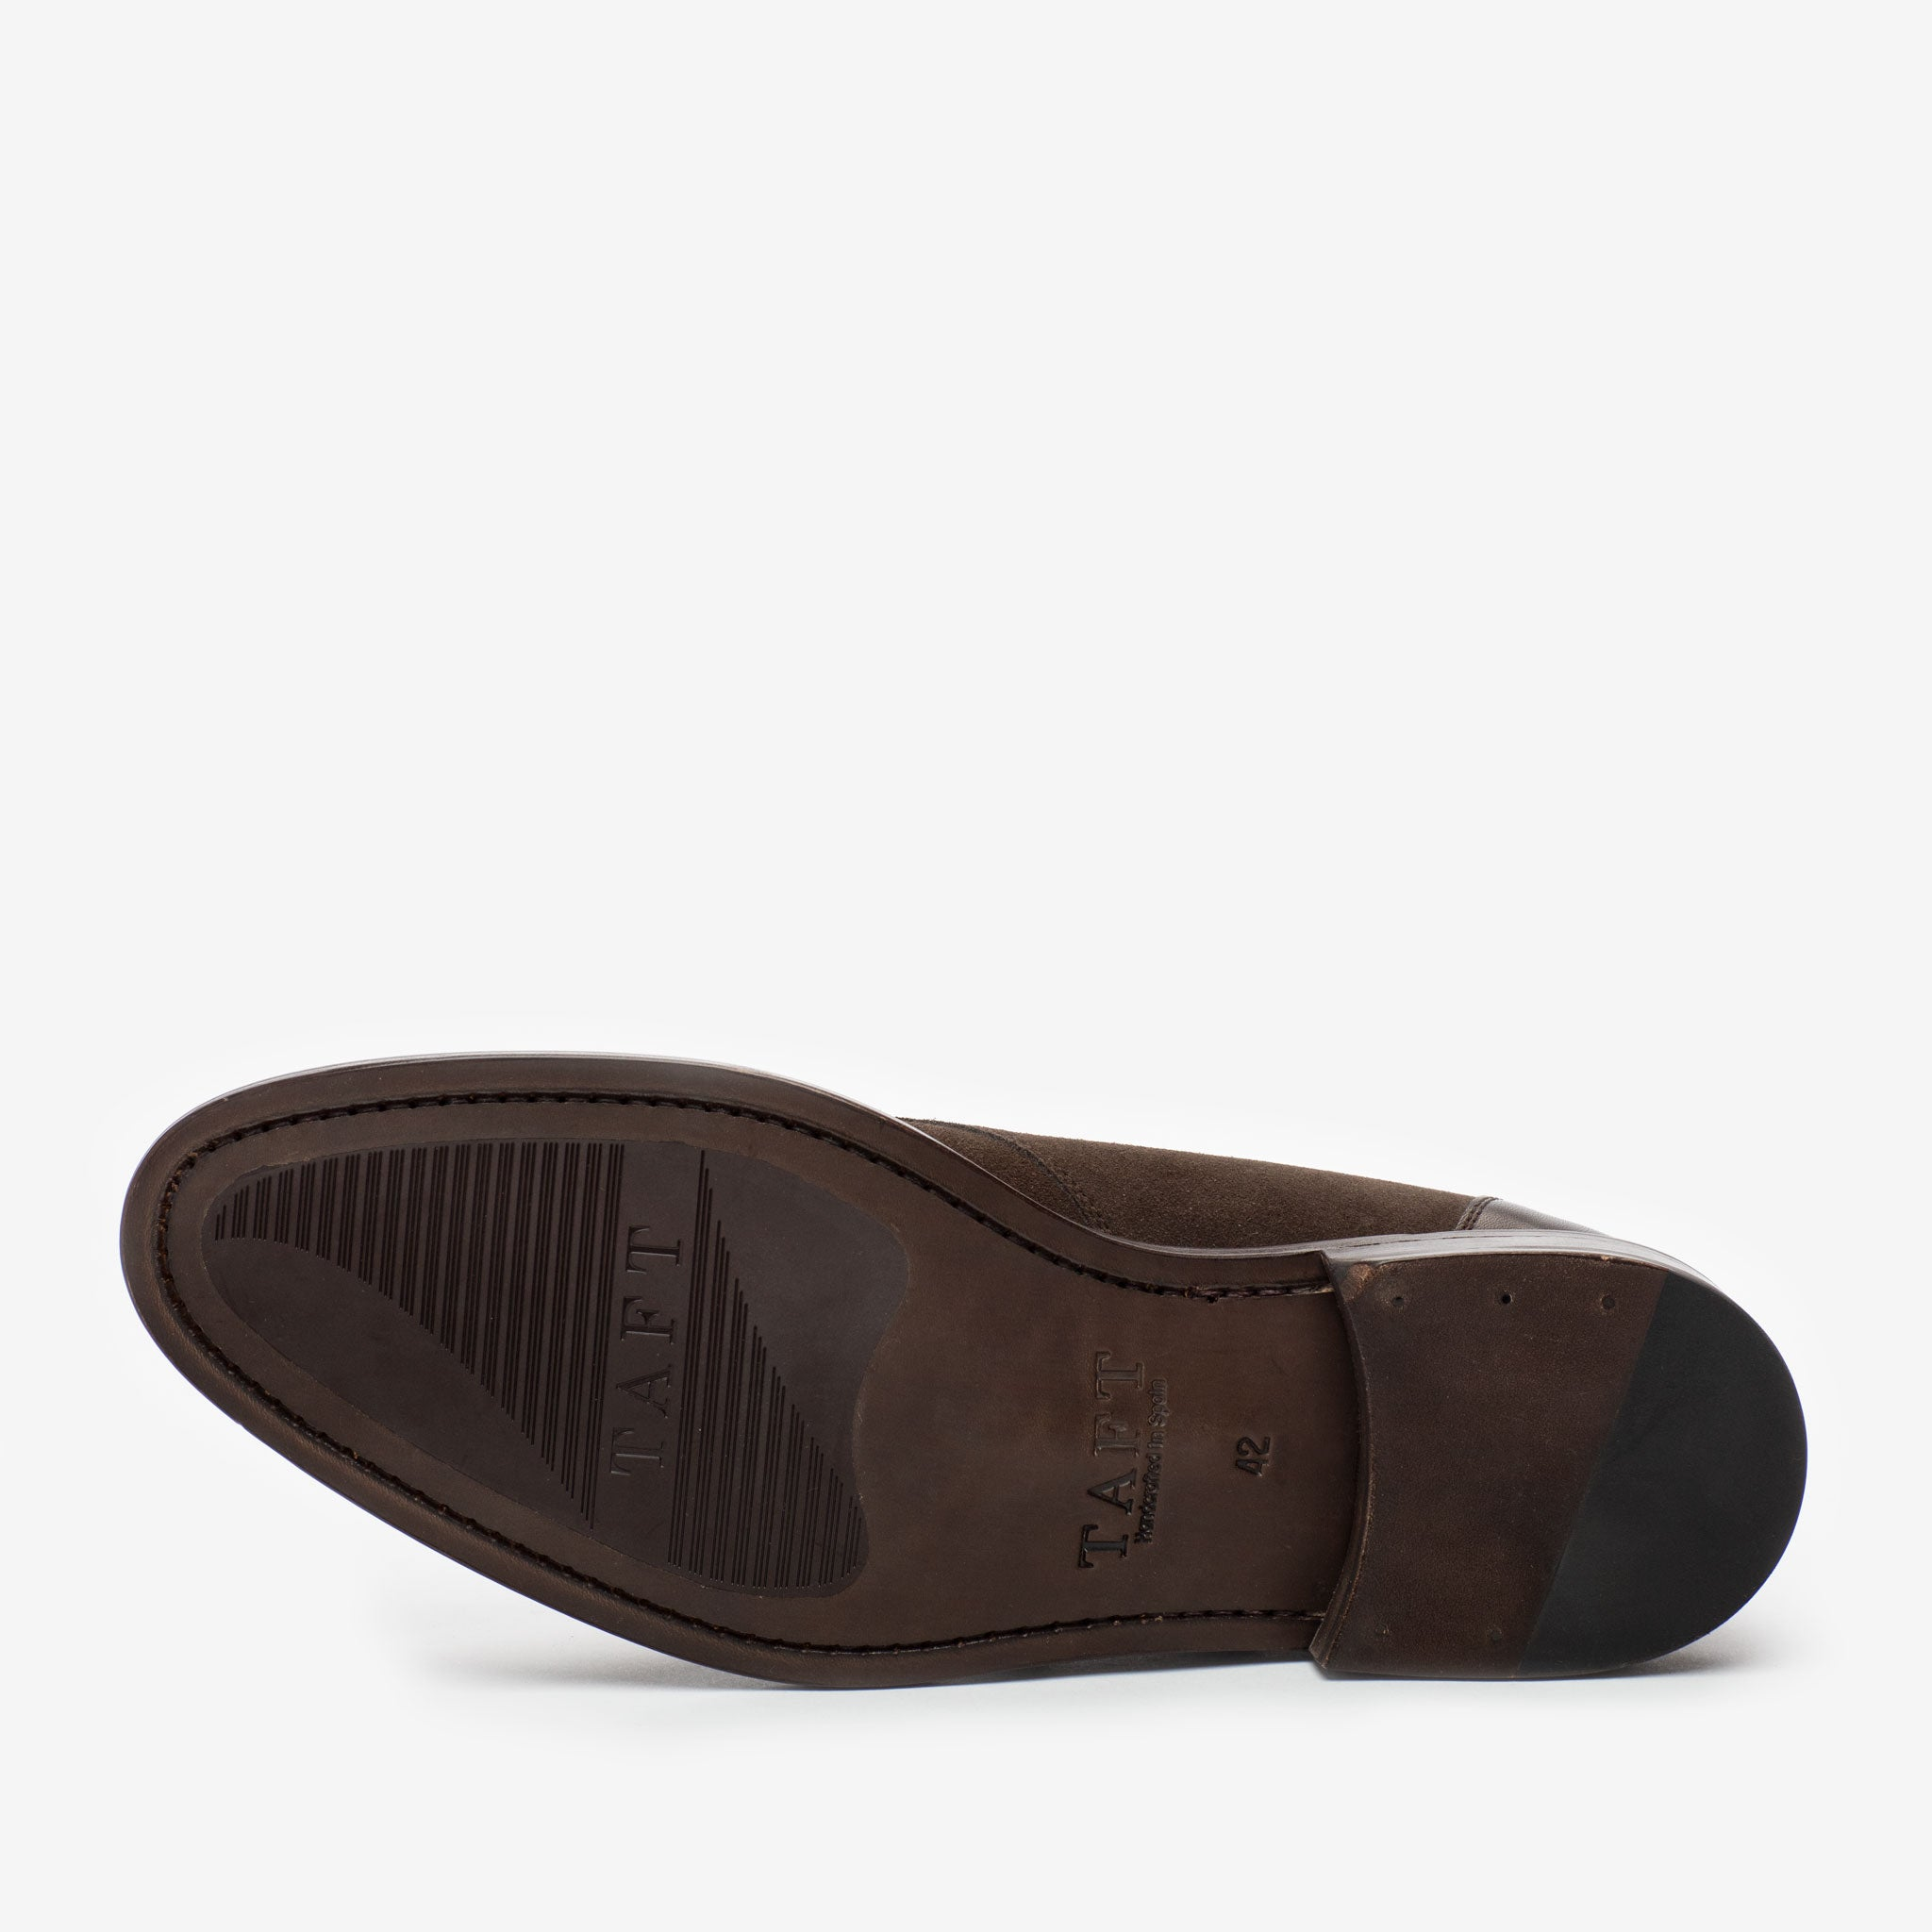 The Westminster Shoe in Chocolate sole